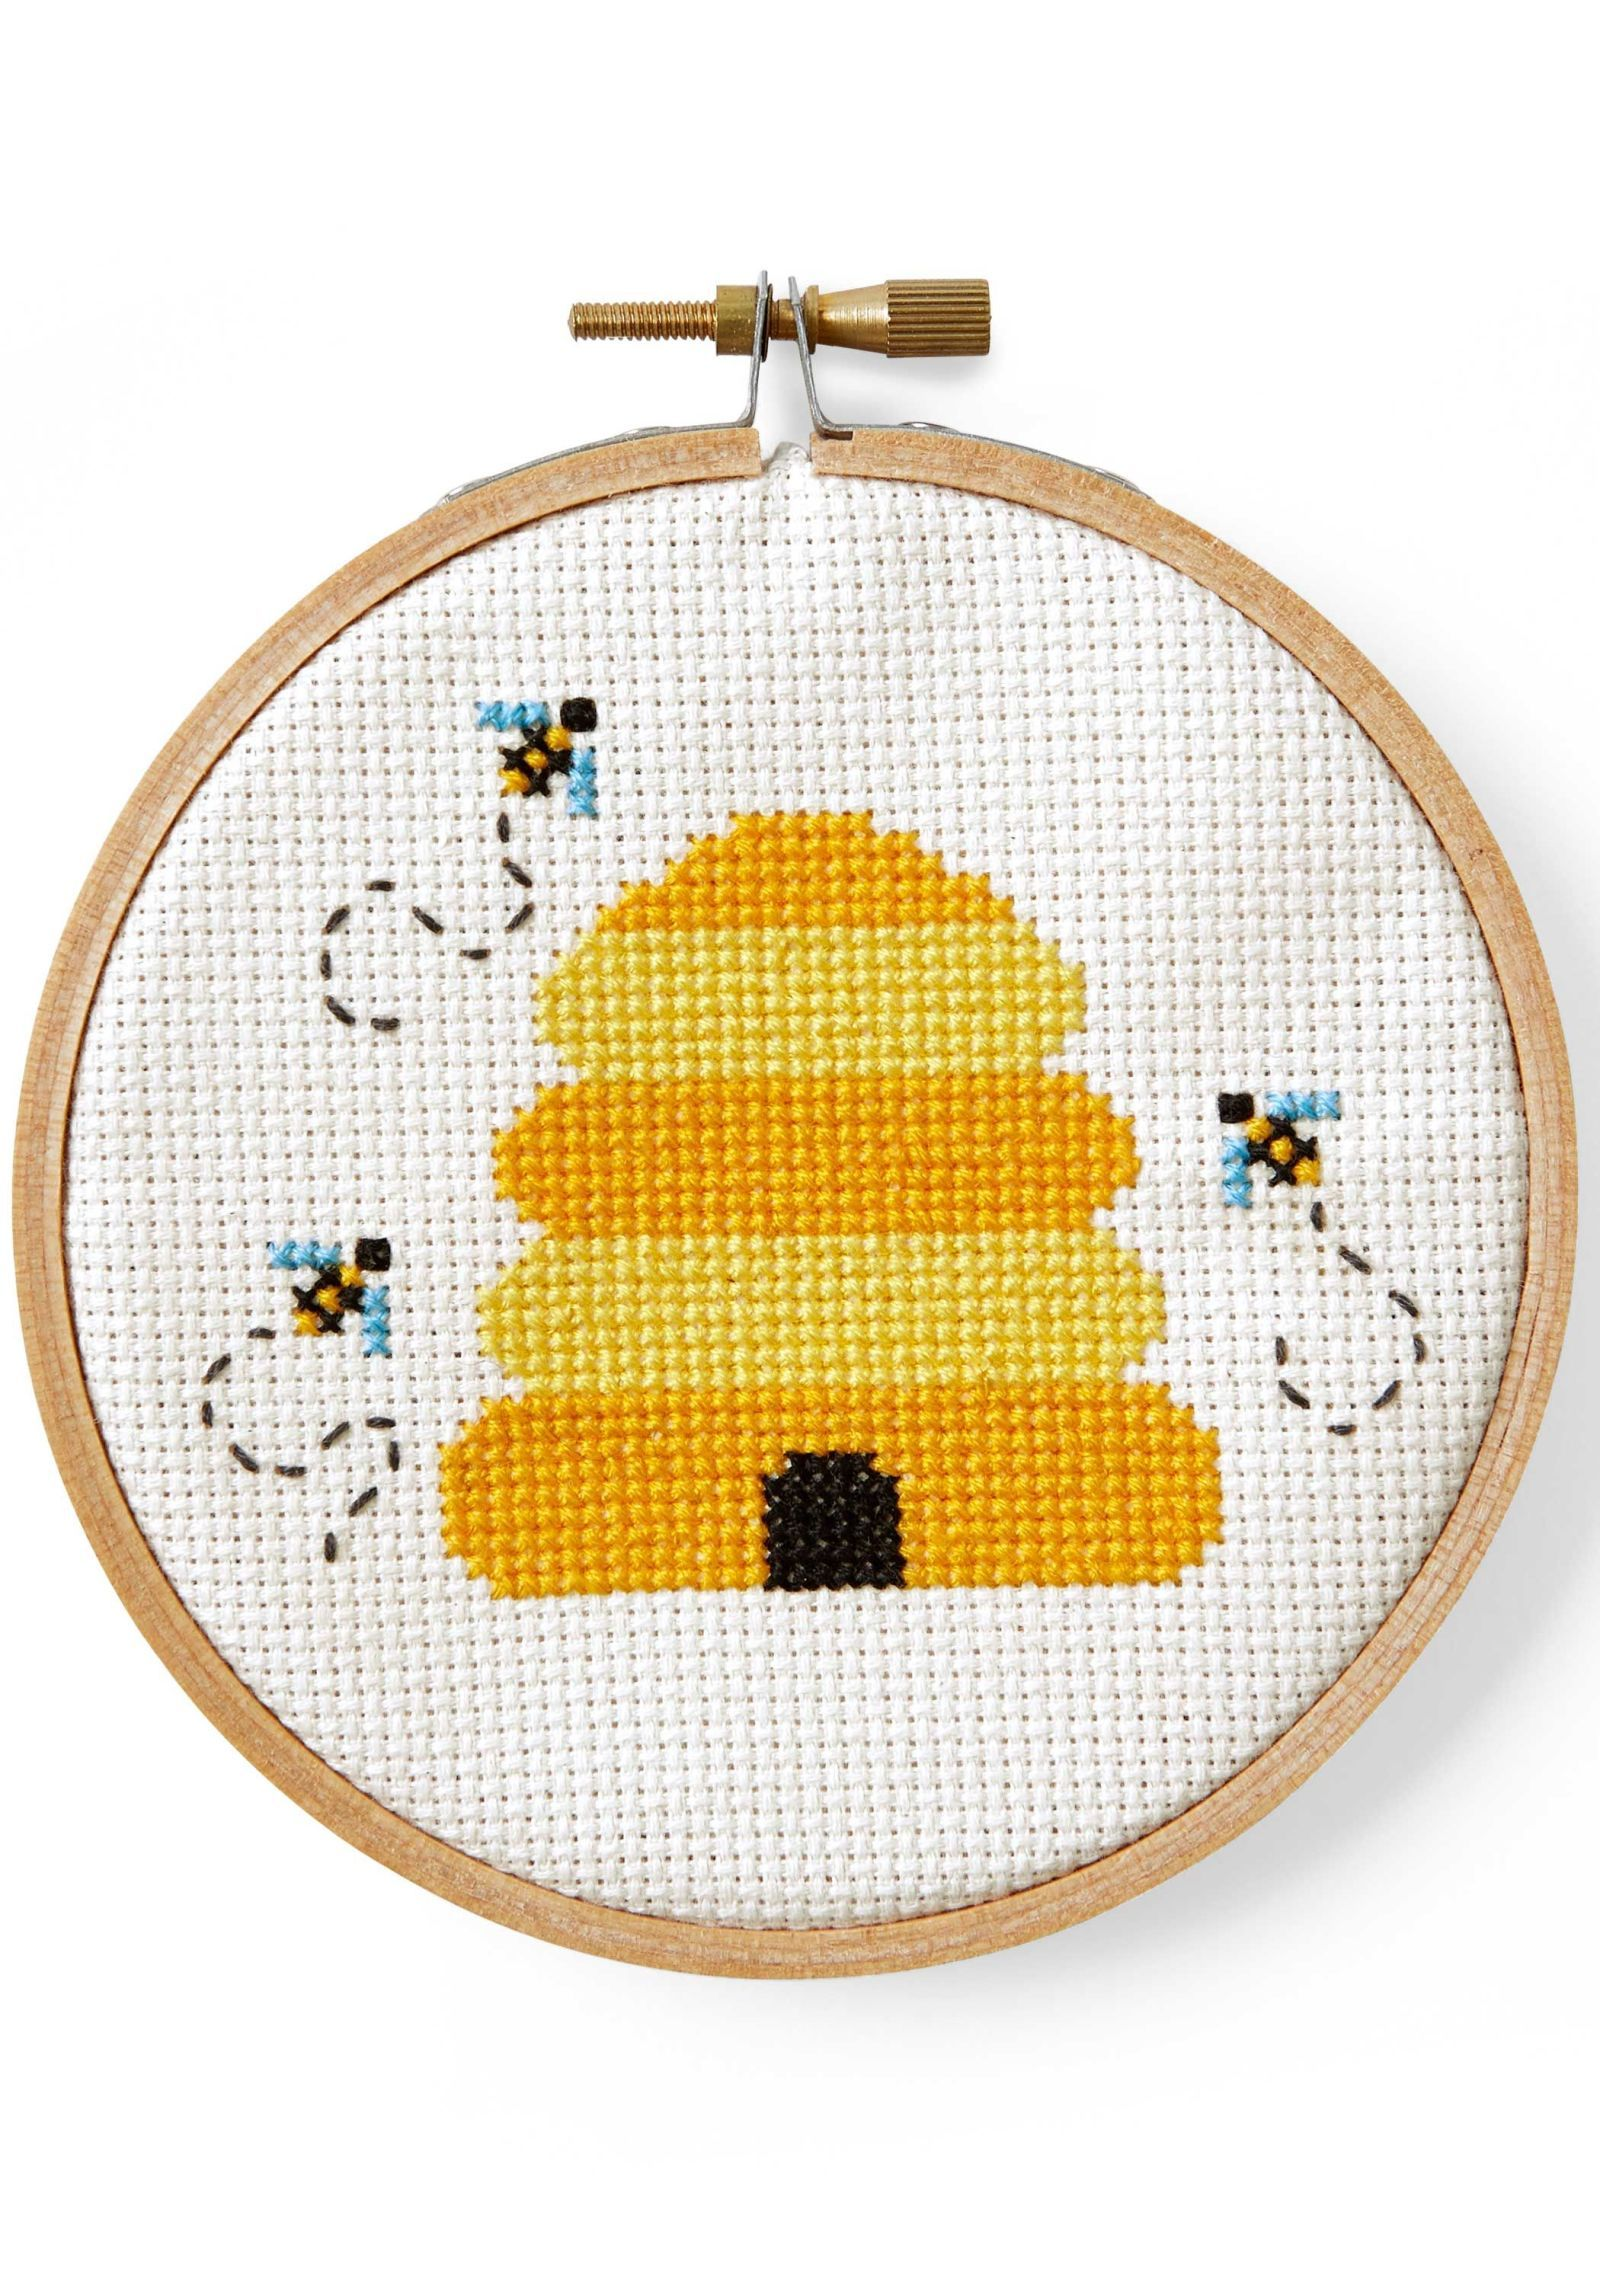 Free Cross Stitch Patterns Simple Cross Stitch Easy Cross